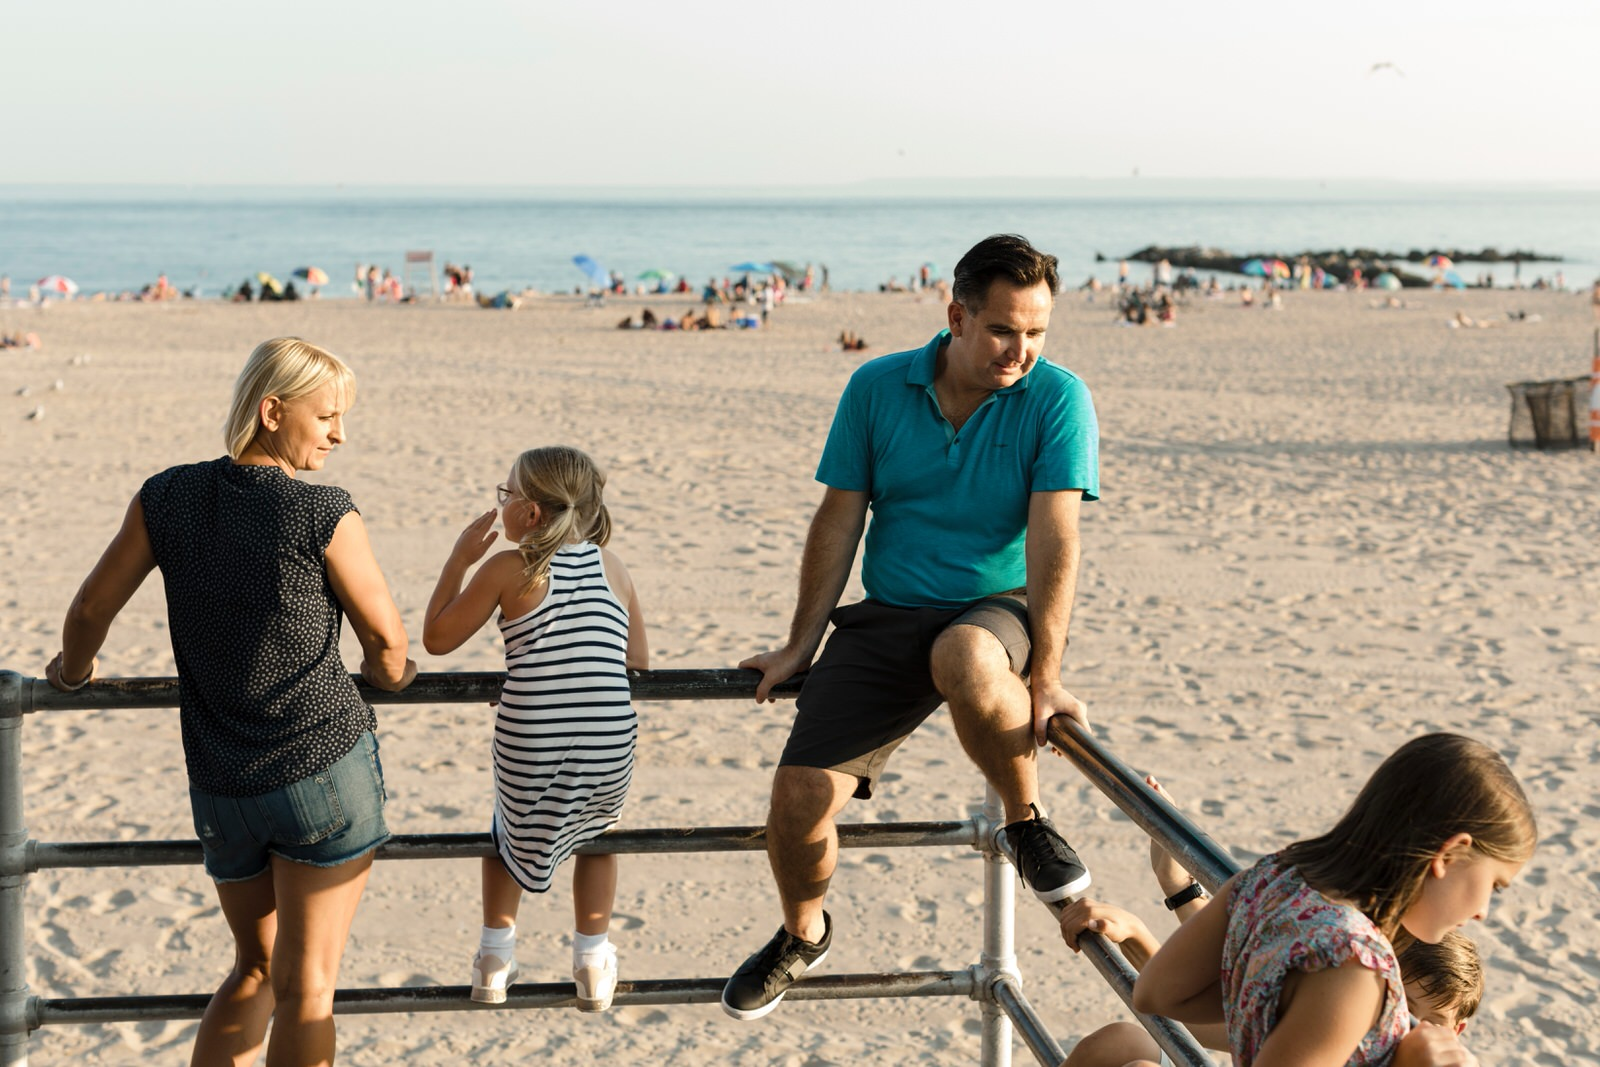 coney-island-day-in-life-family-photography-30.JPG